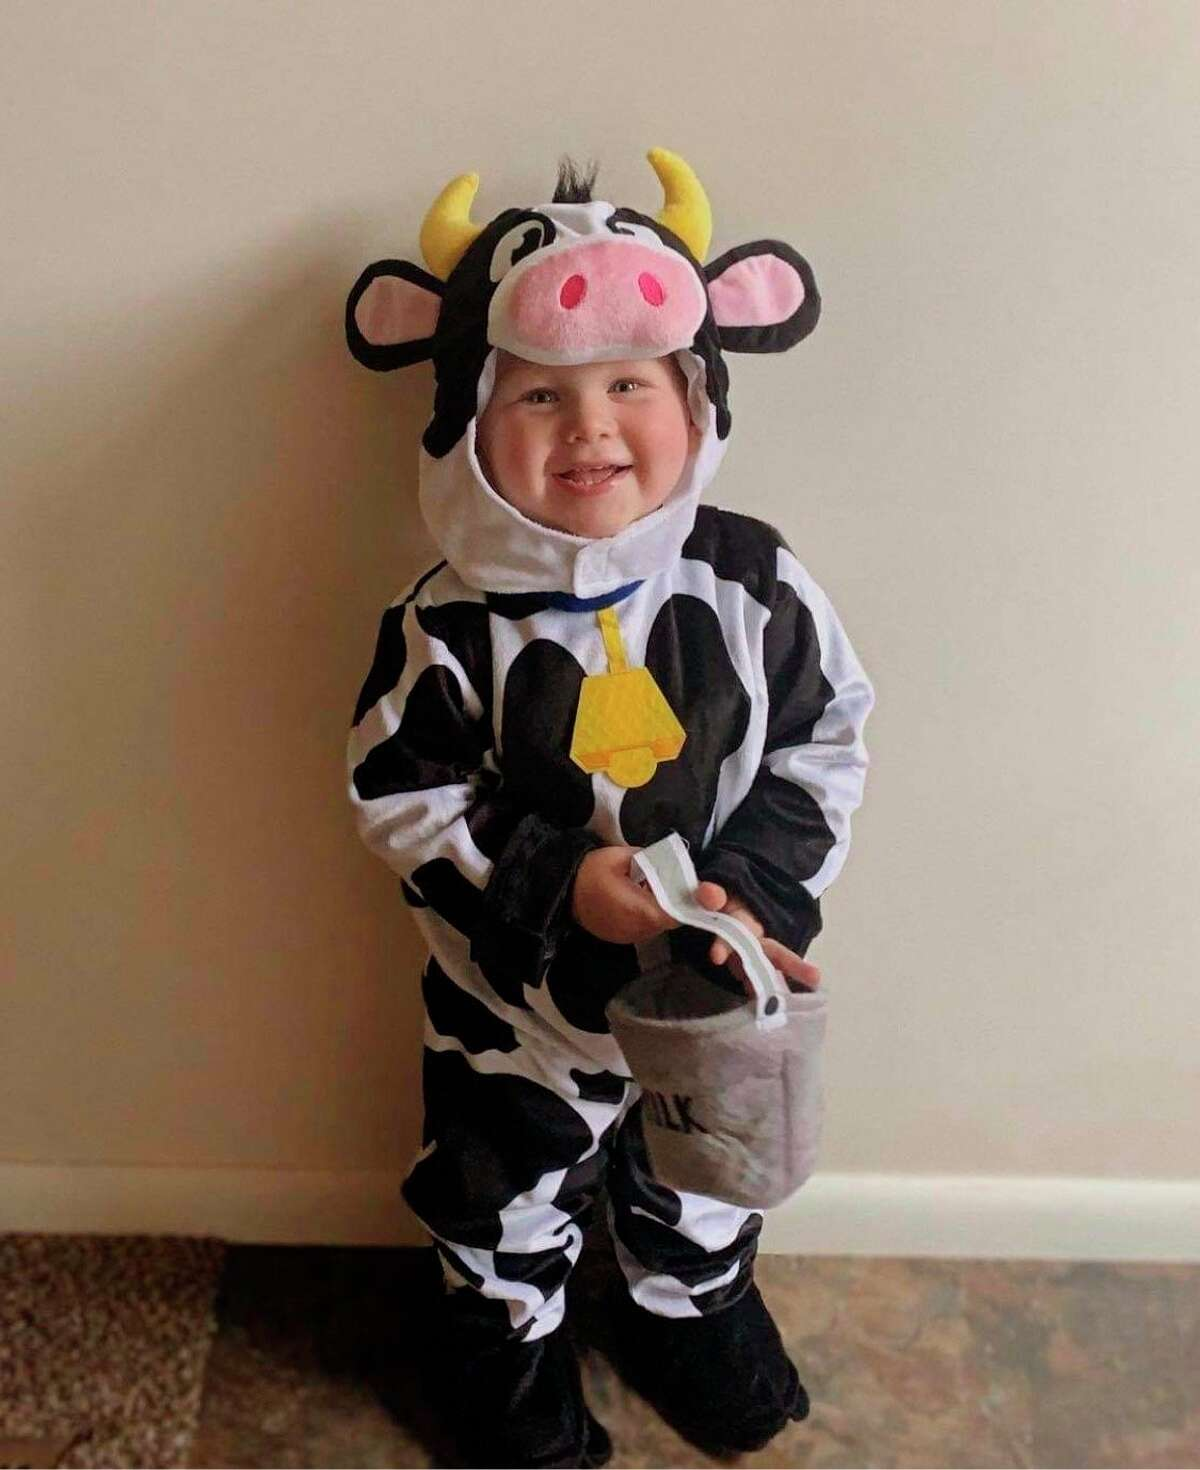 Declan Kuenzer, age 2, was a first prize winner of the Prince and Princess of Onekema contest in 2021. (Courtesy Photo/Tara Lyman)